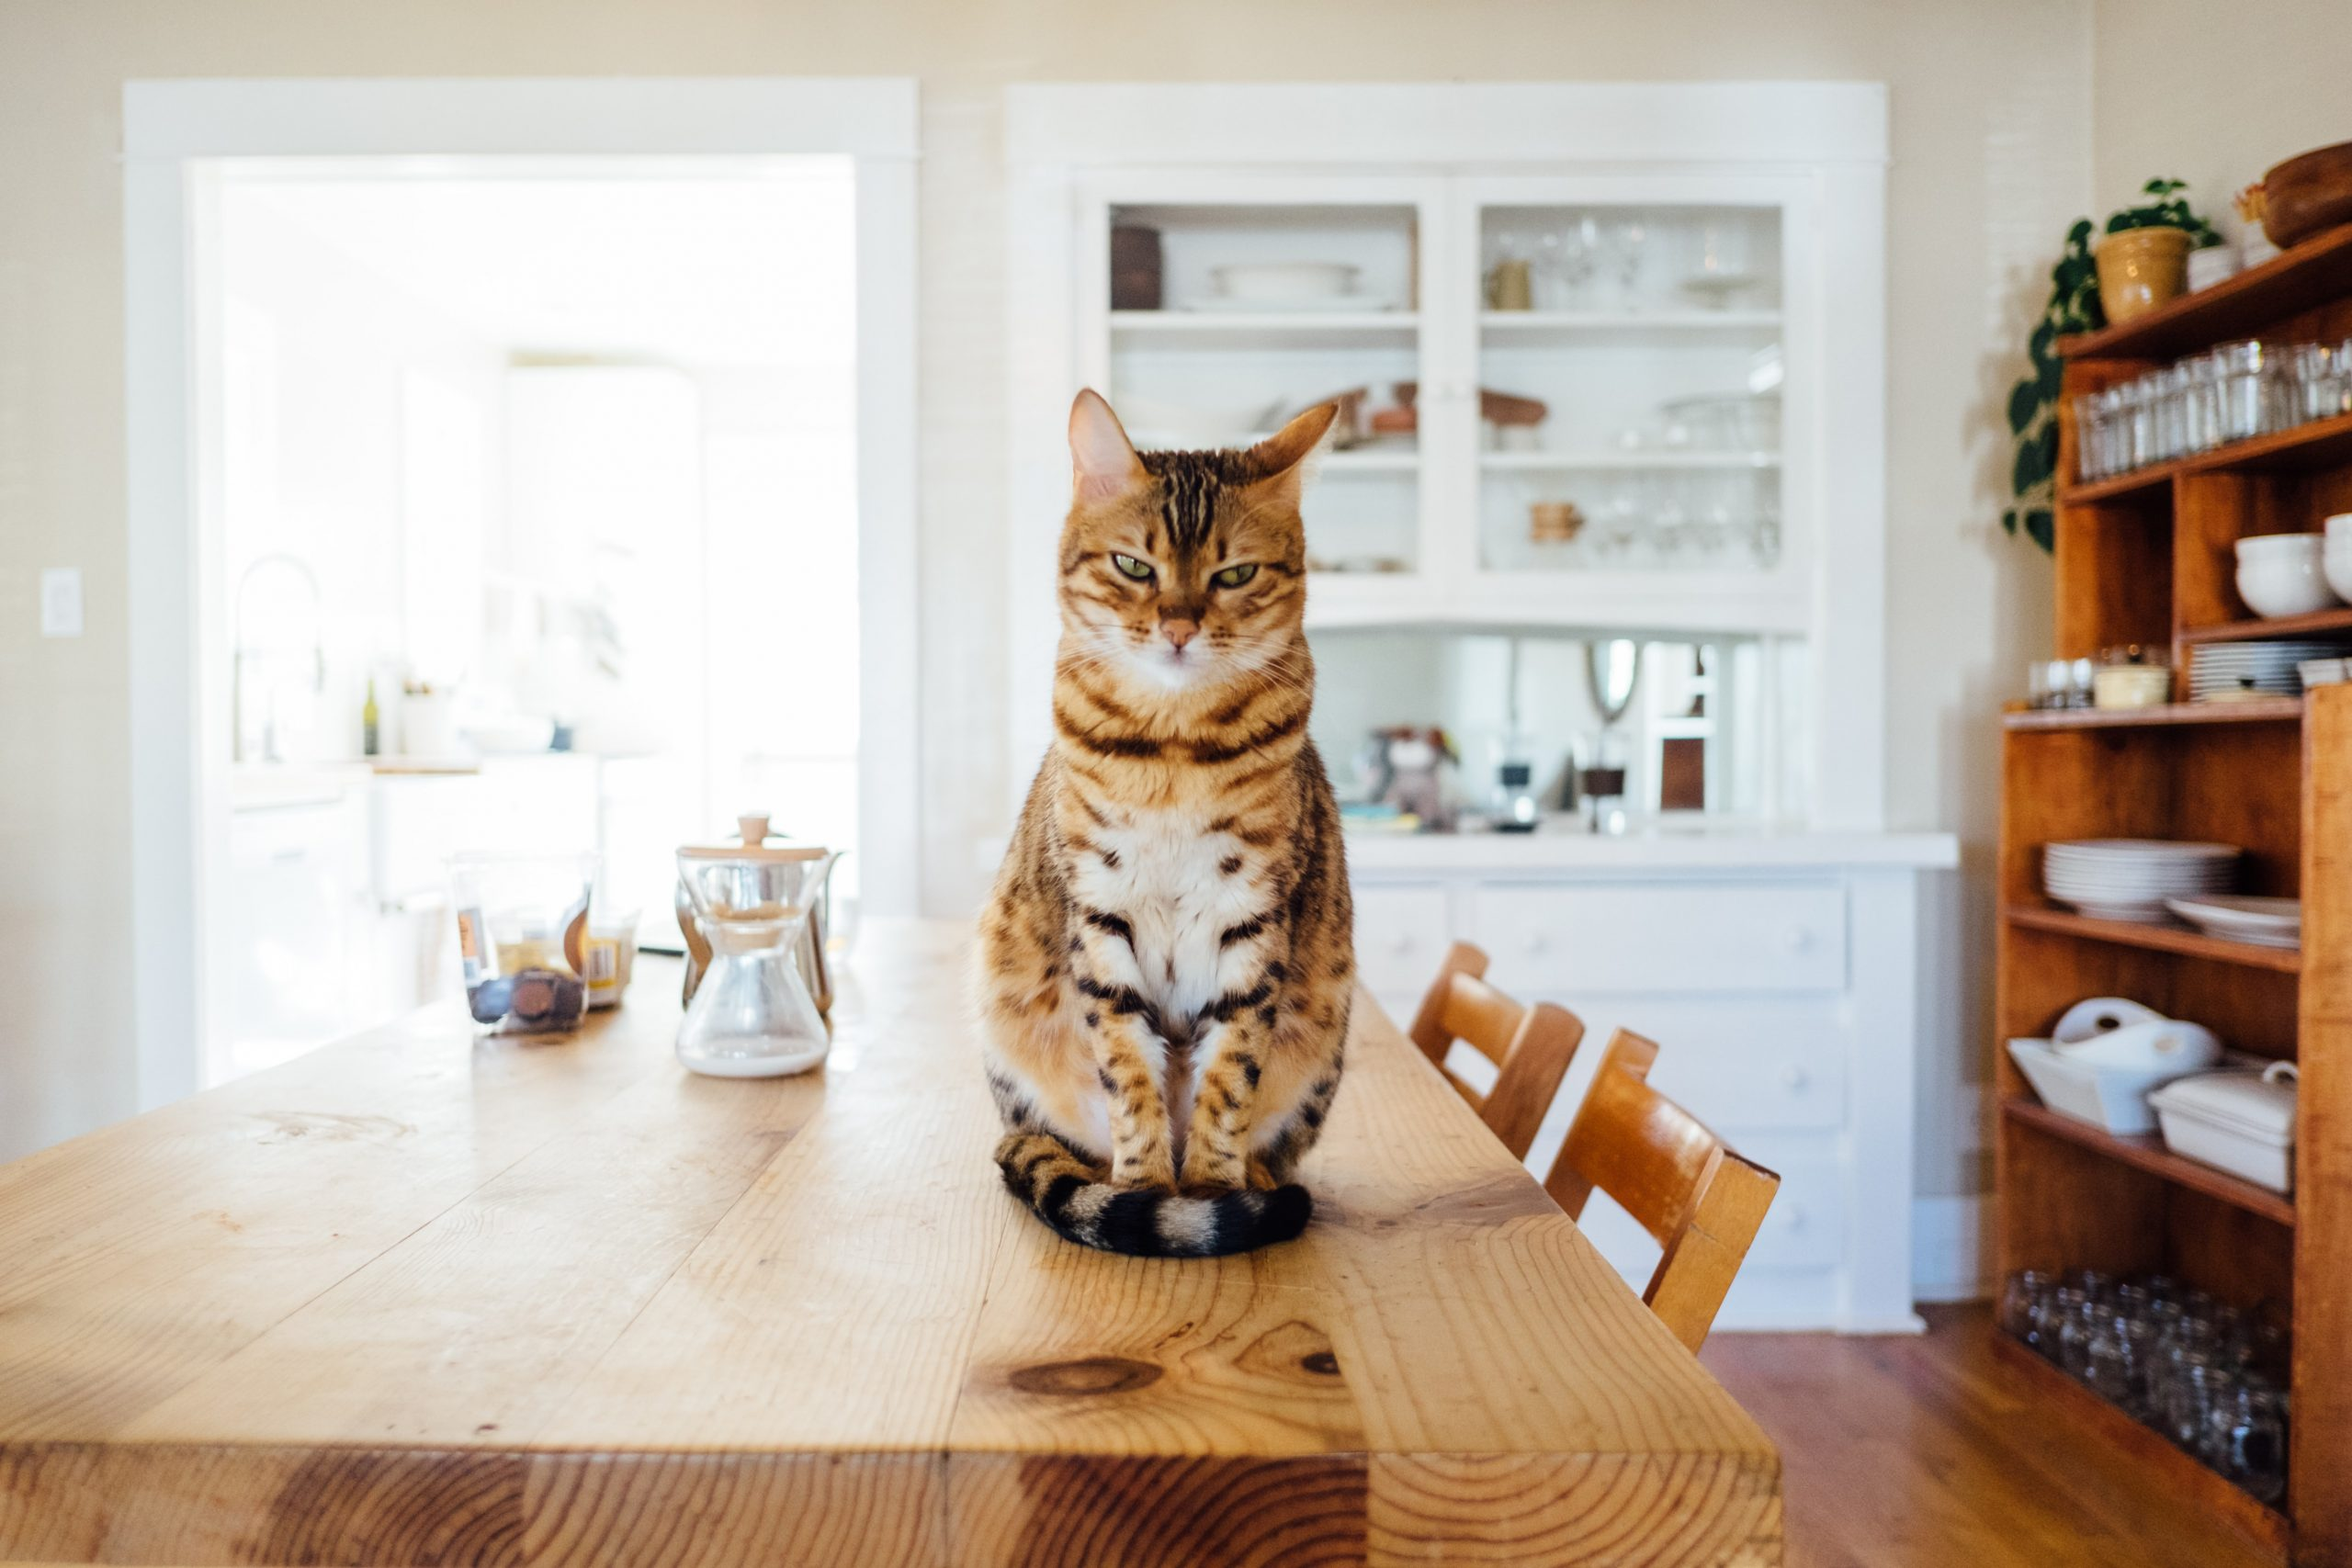 Cat on a table